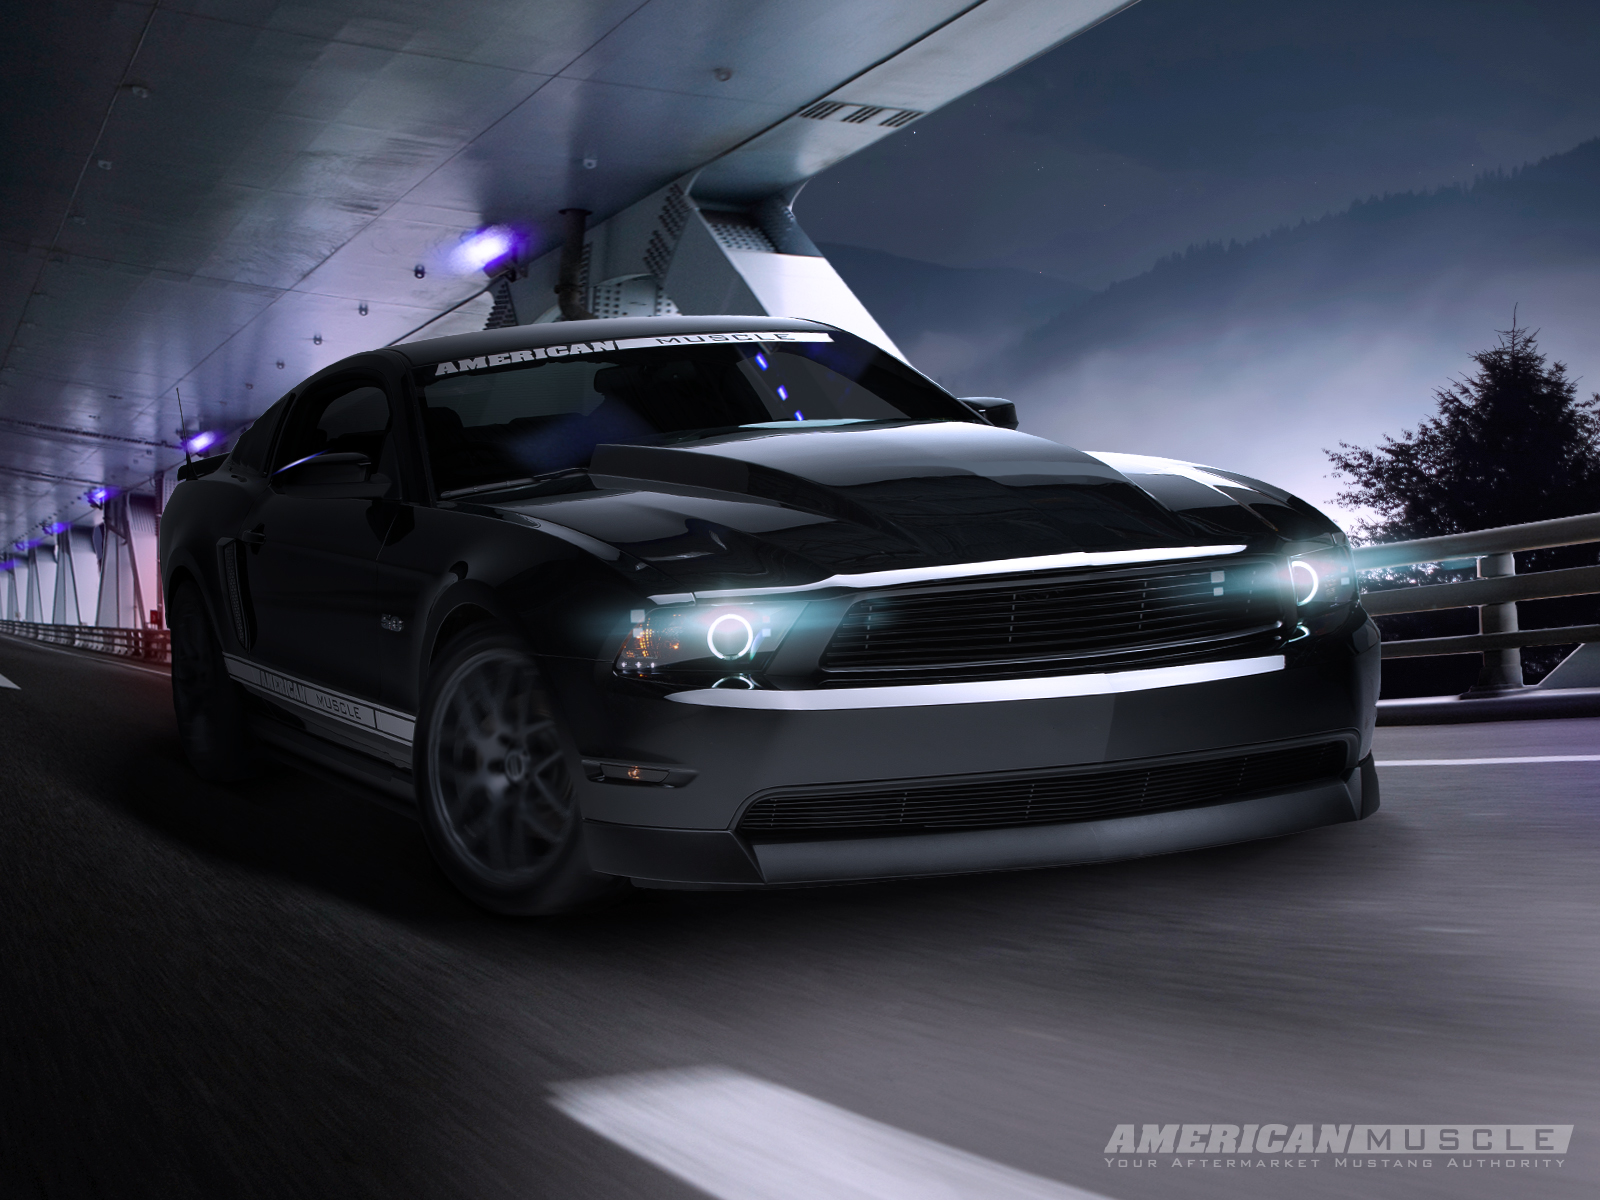 Mustang Night Cruiser Desktop Background Wallpaper Parts for Mustang 1600x1200